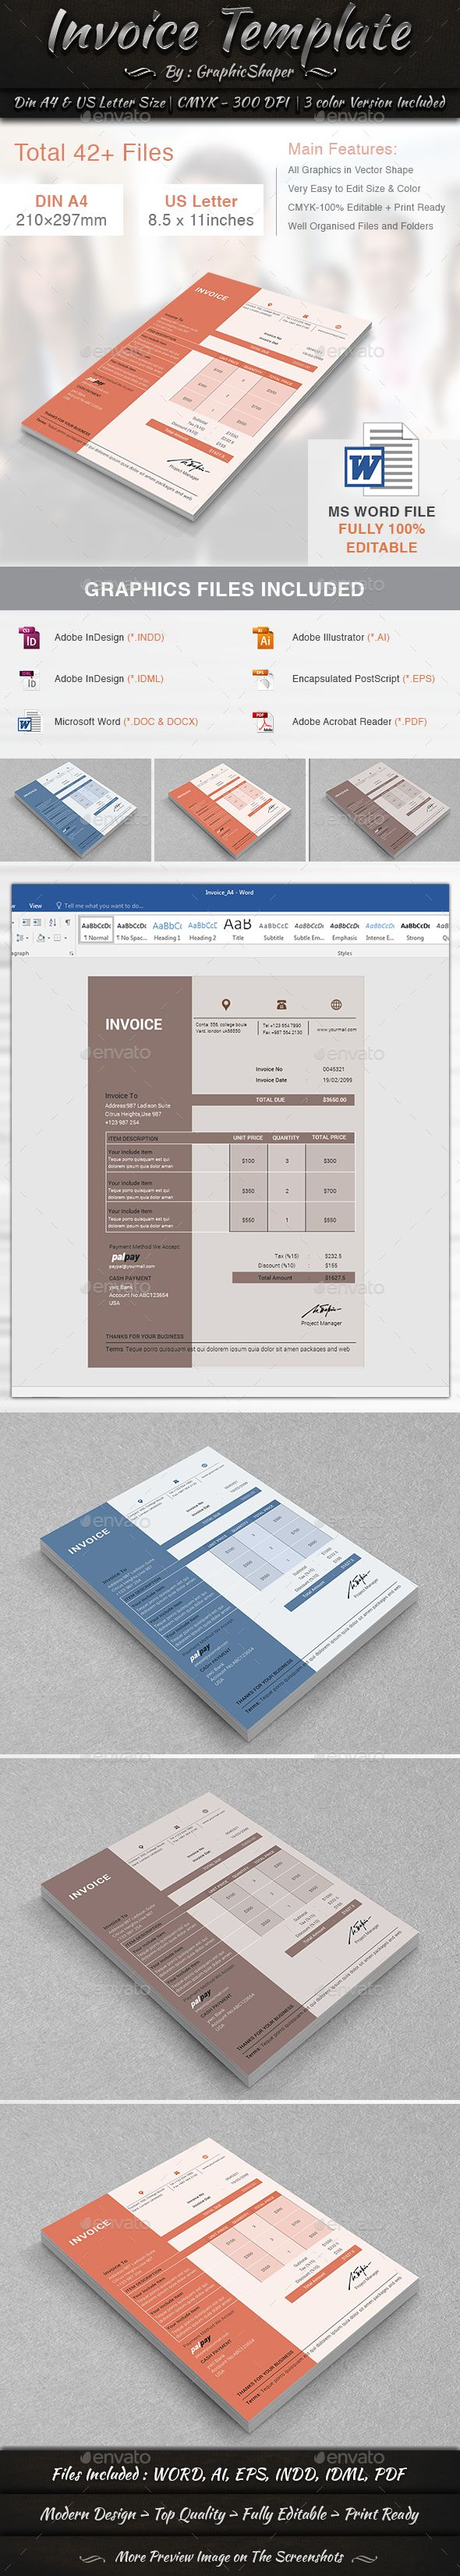 free proposal template%0A  Invoice Template   Proposals  u     Invoices  Stationery